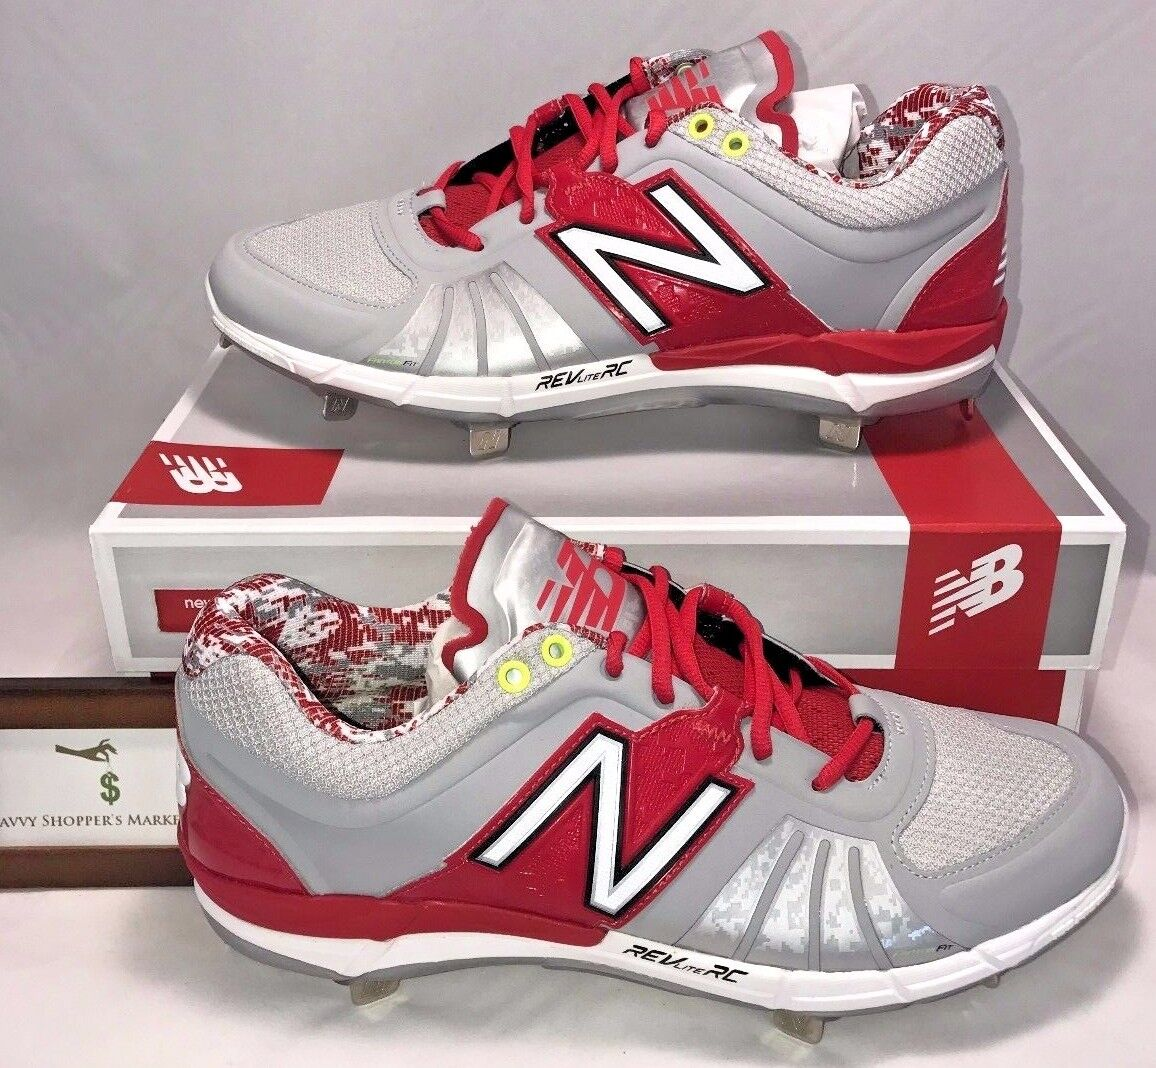 New Balance Mens Size 13 Low Metal Baseball Cleats Red Silver Digital